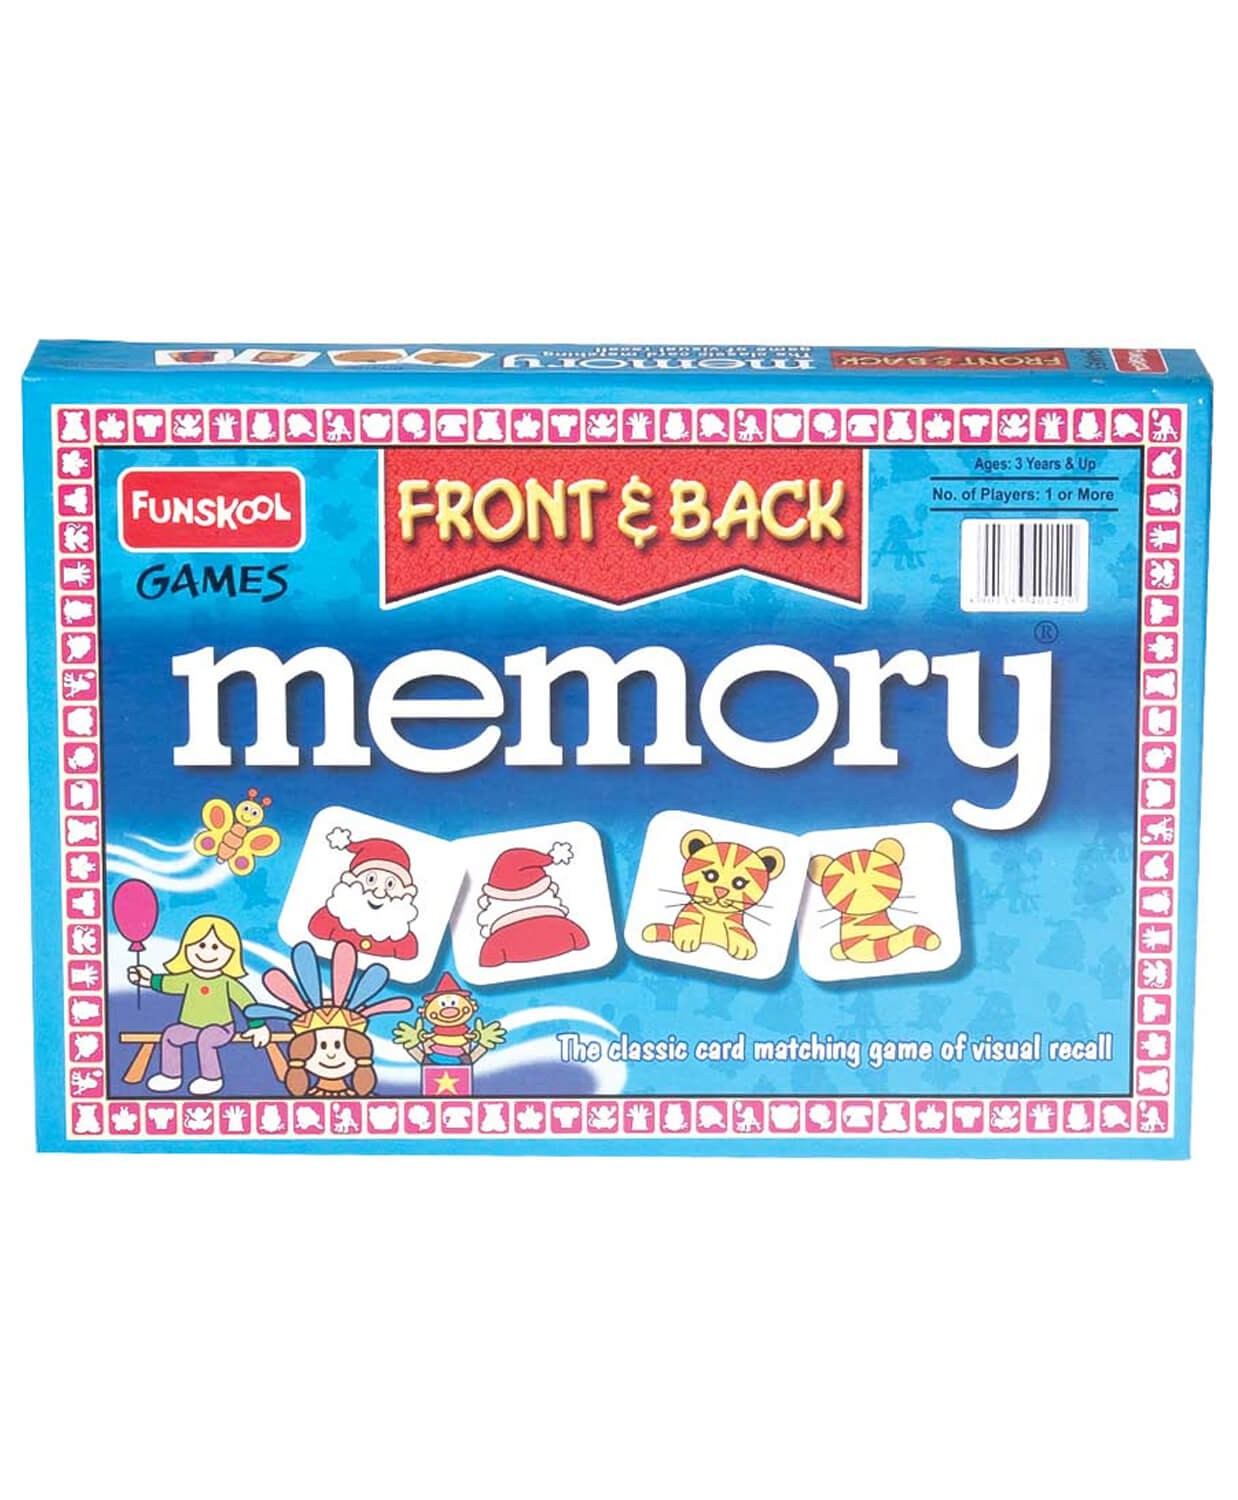 Funskool Memory Fronts And Back